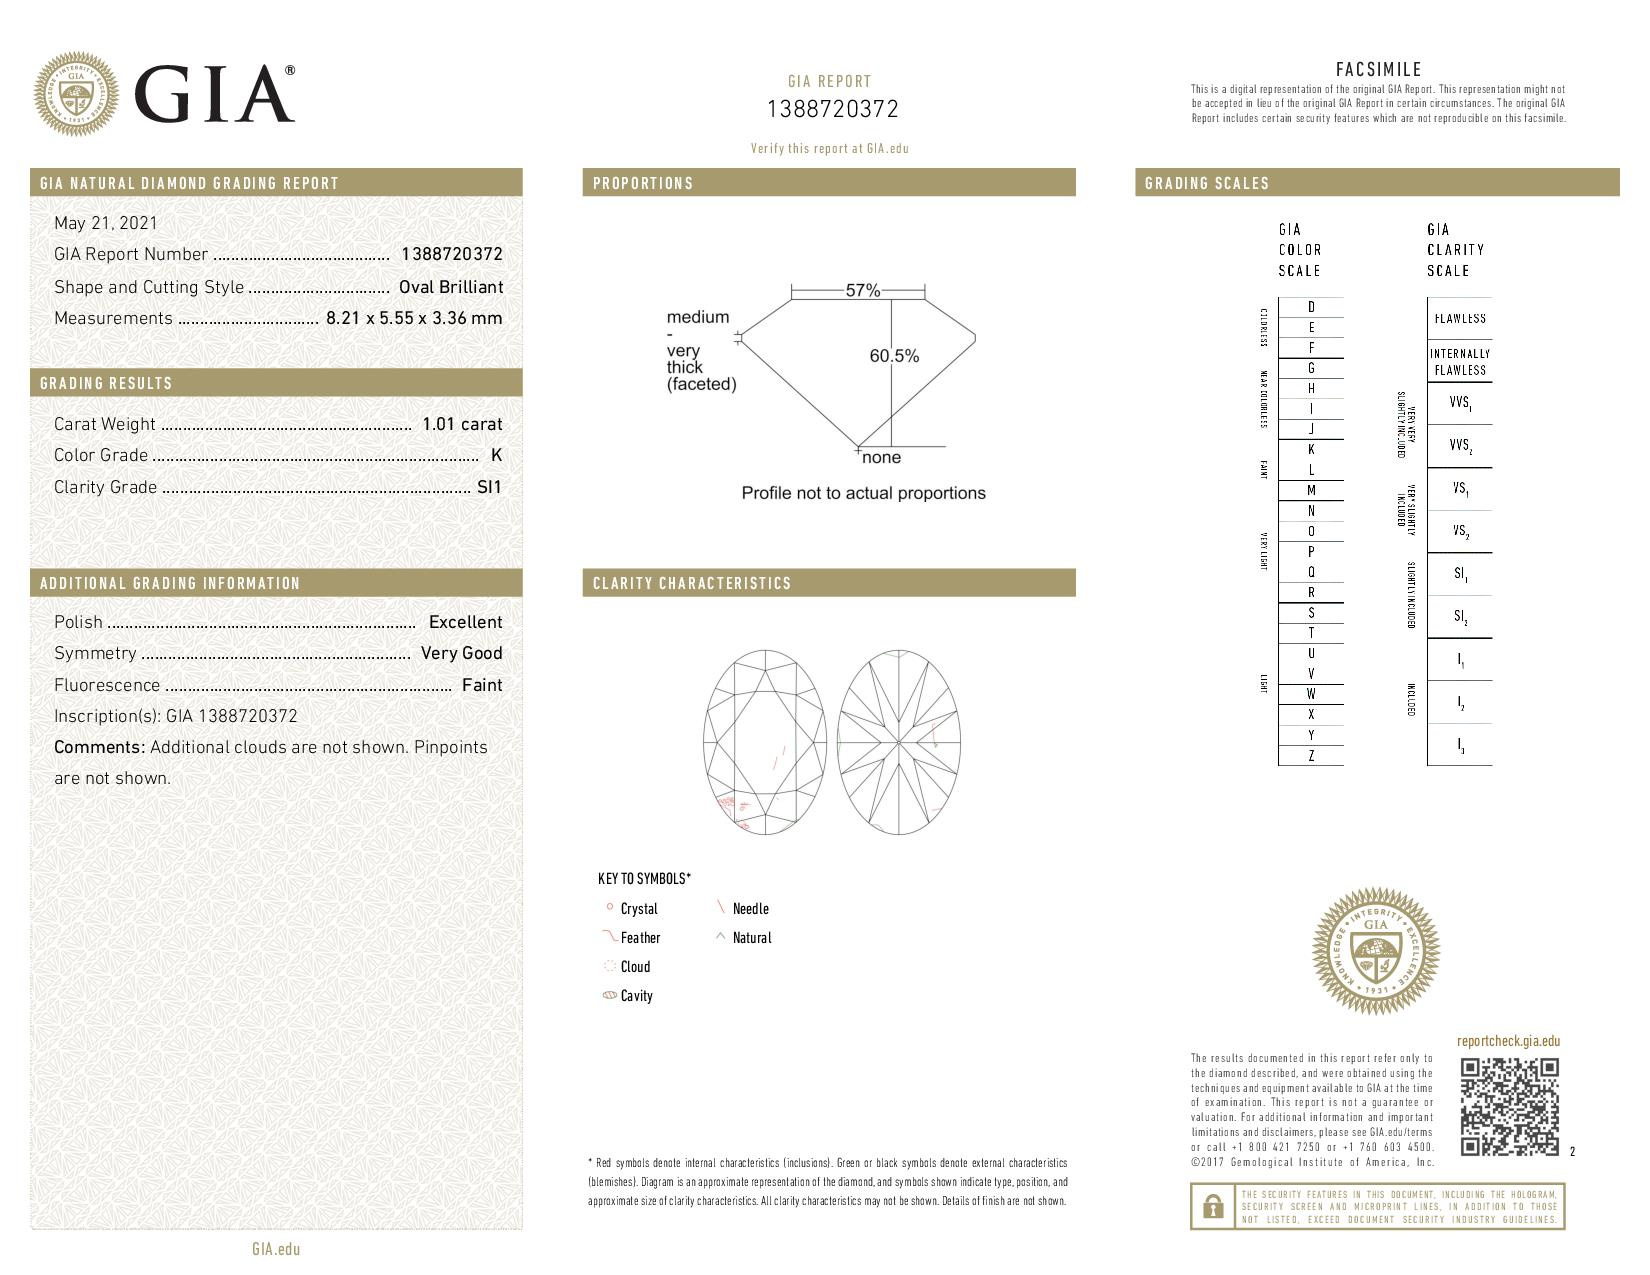 This is a 1.01 carat oval shape, K color, SI1 clarity natural diamond accompanied by a GIA grading report.